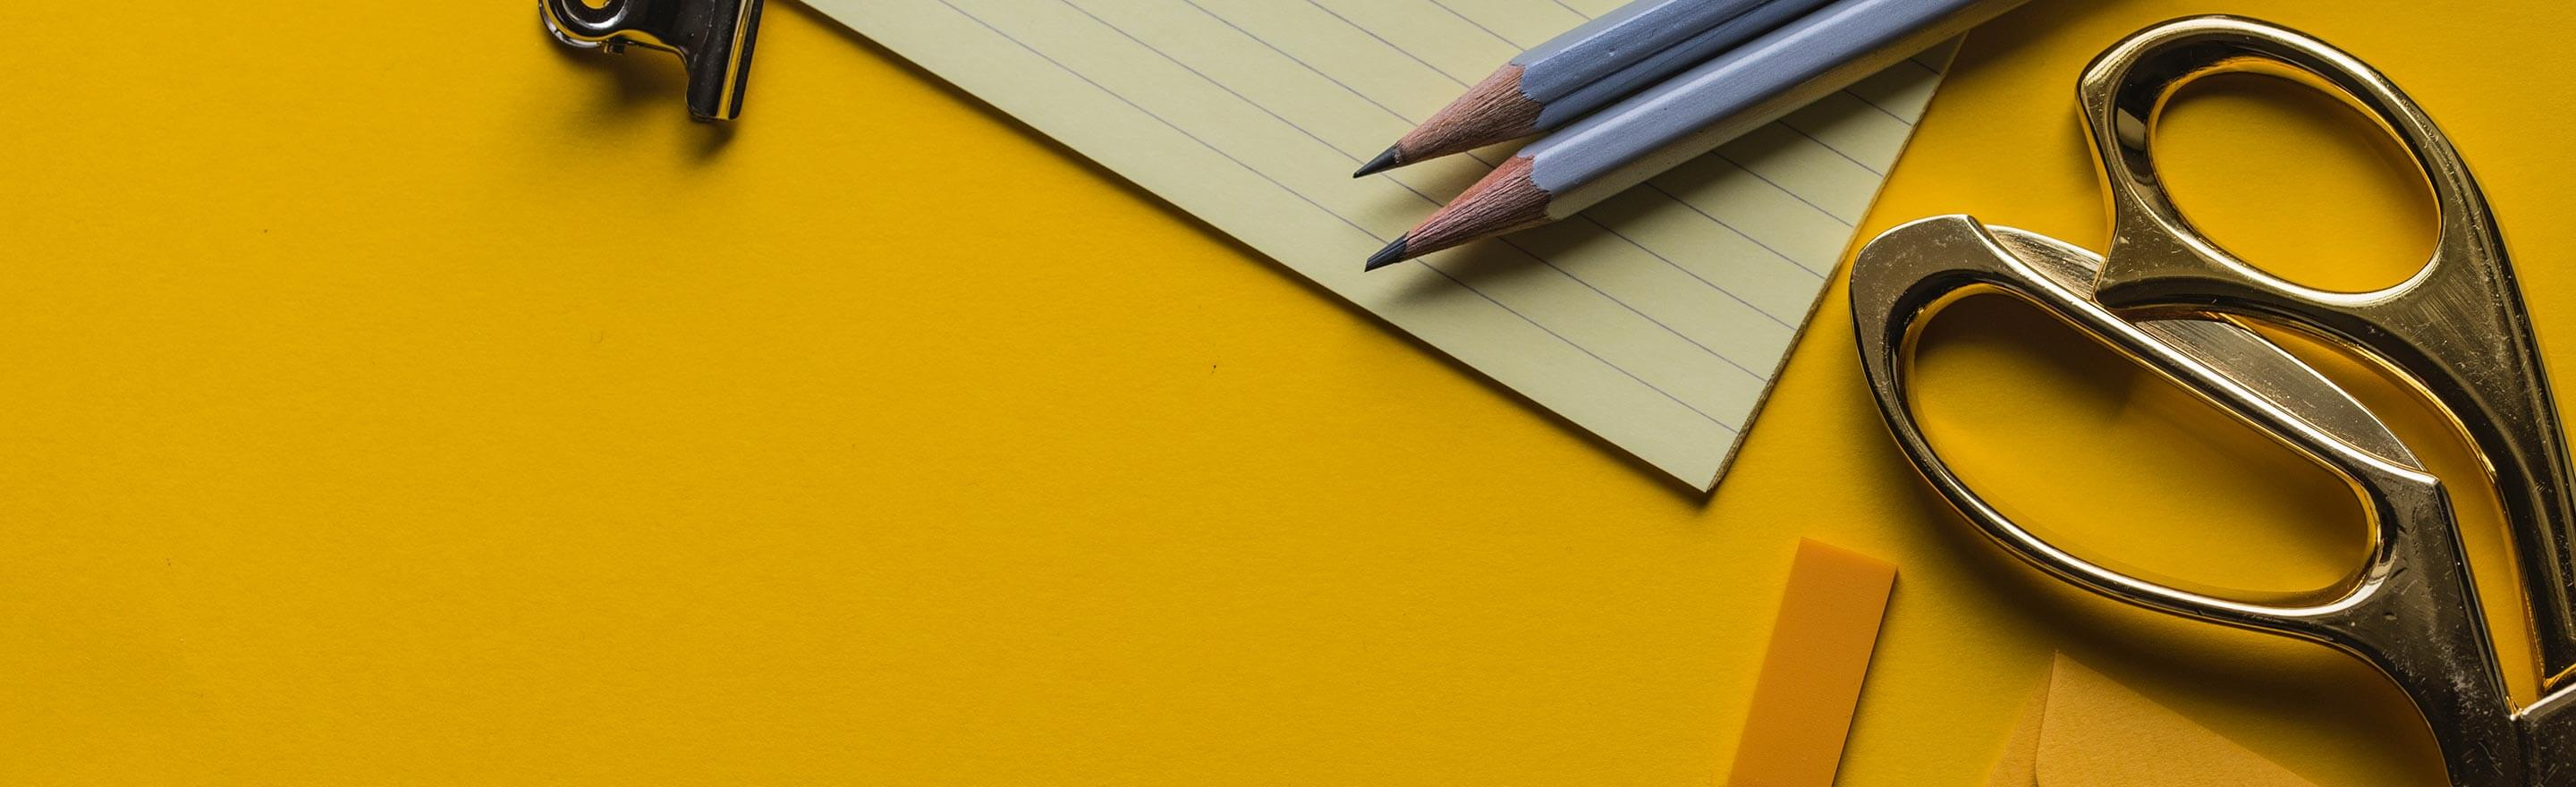 Office Supplies on Yellow Paper